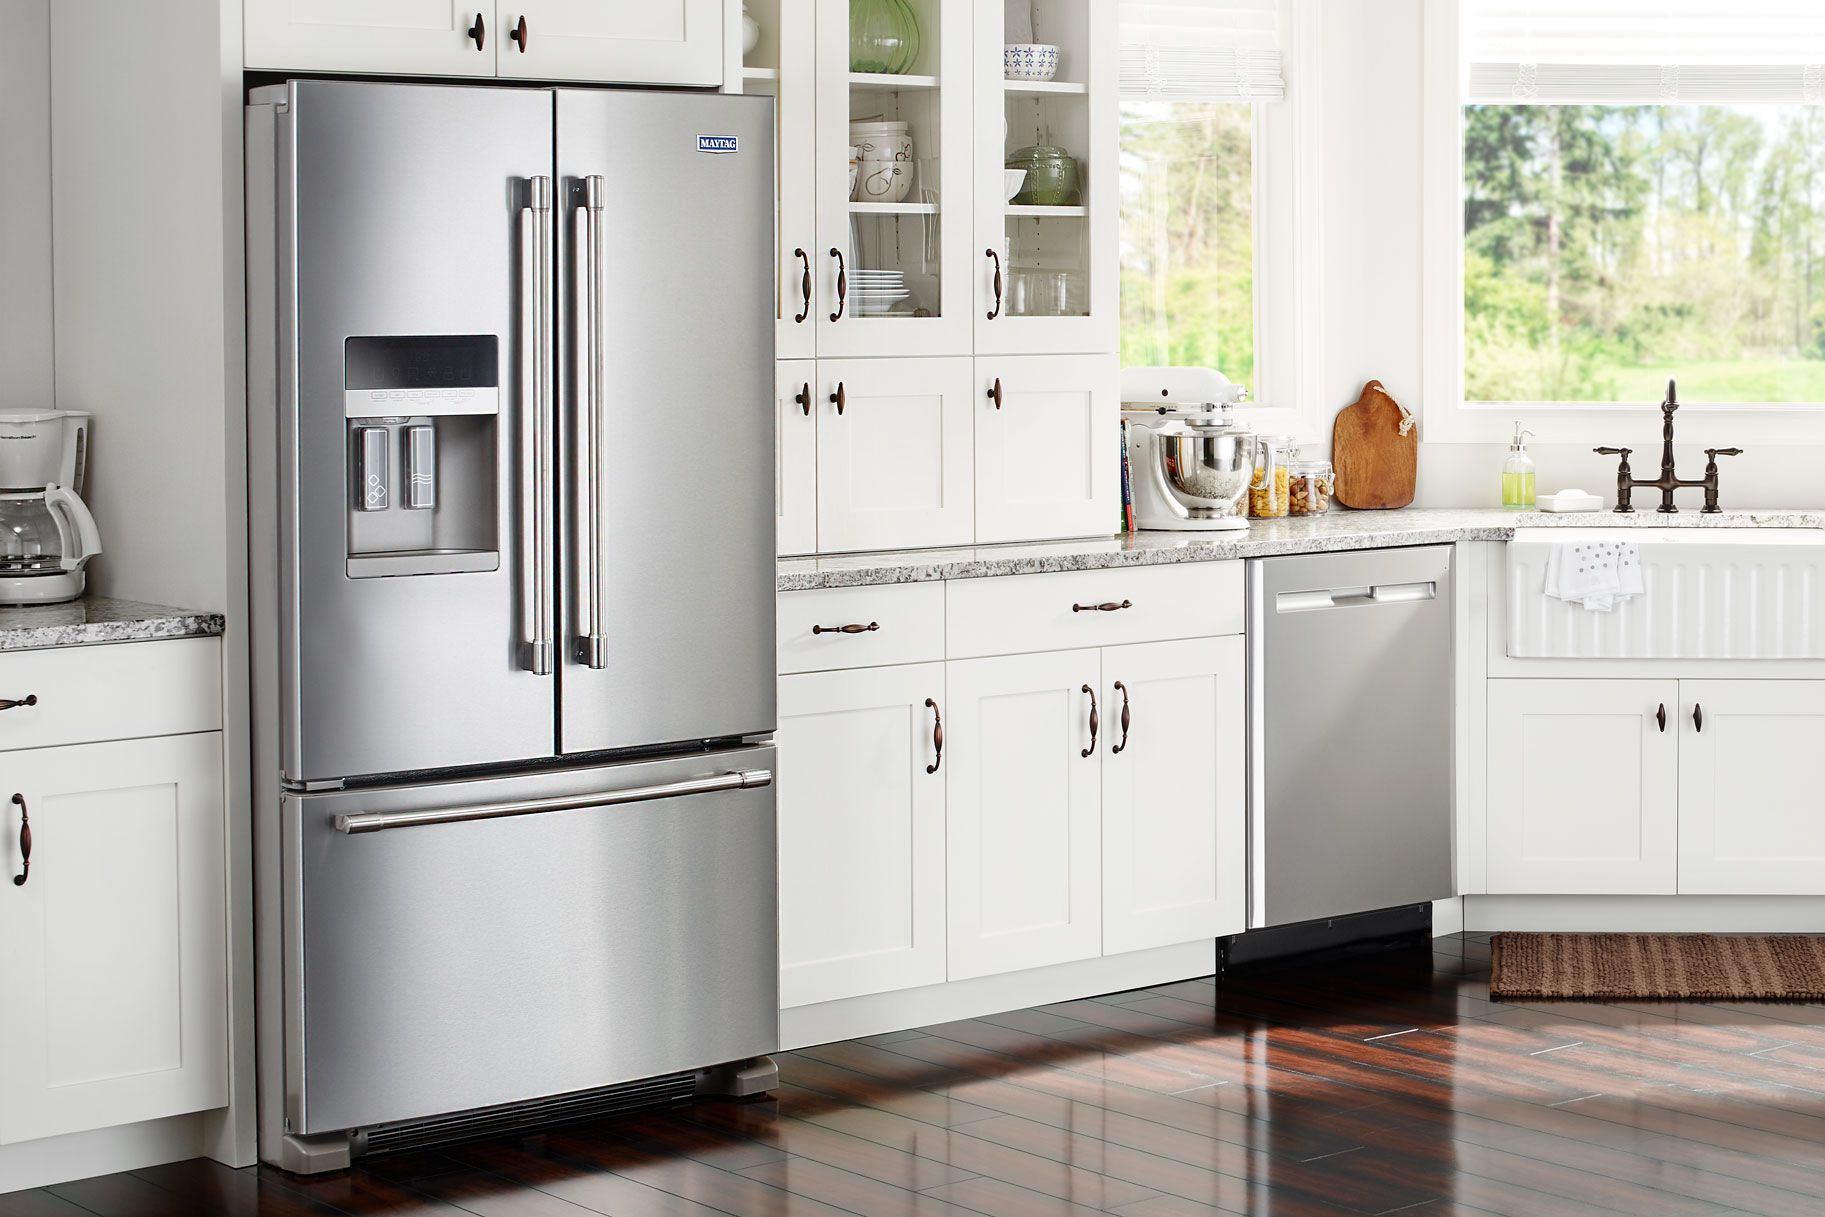 Are You A Total Neat Freak You Need This Fingerprint Proof Fridge In Your Life Maytag Kitchen Neat Freak Kitchen Appliances